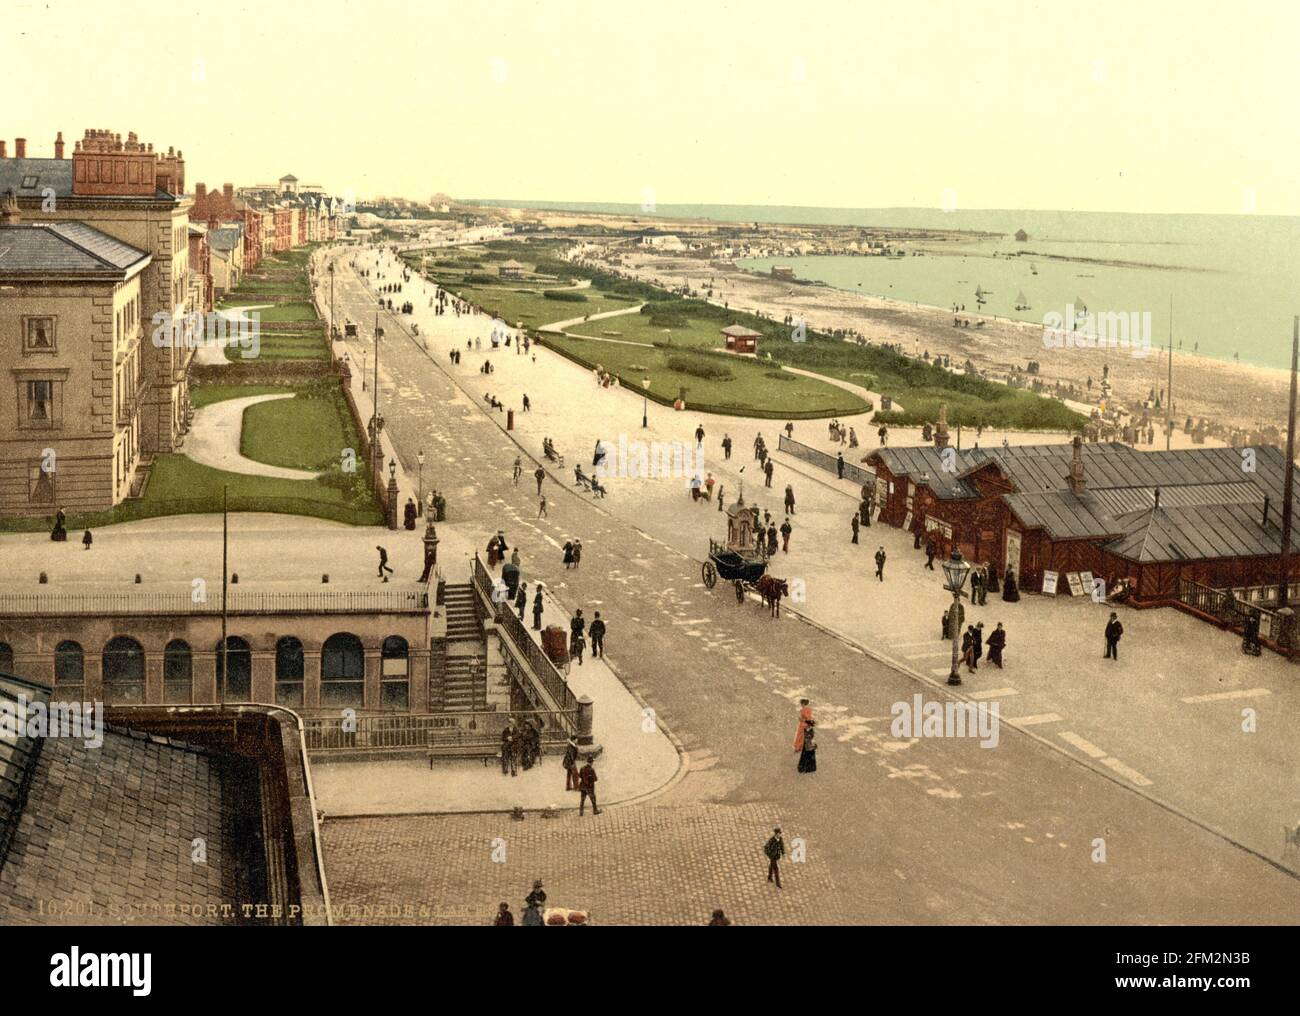 Southport Sea Front, Merseyside, vers 1890-1900 Banque D'Images